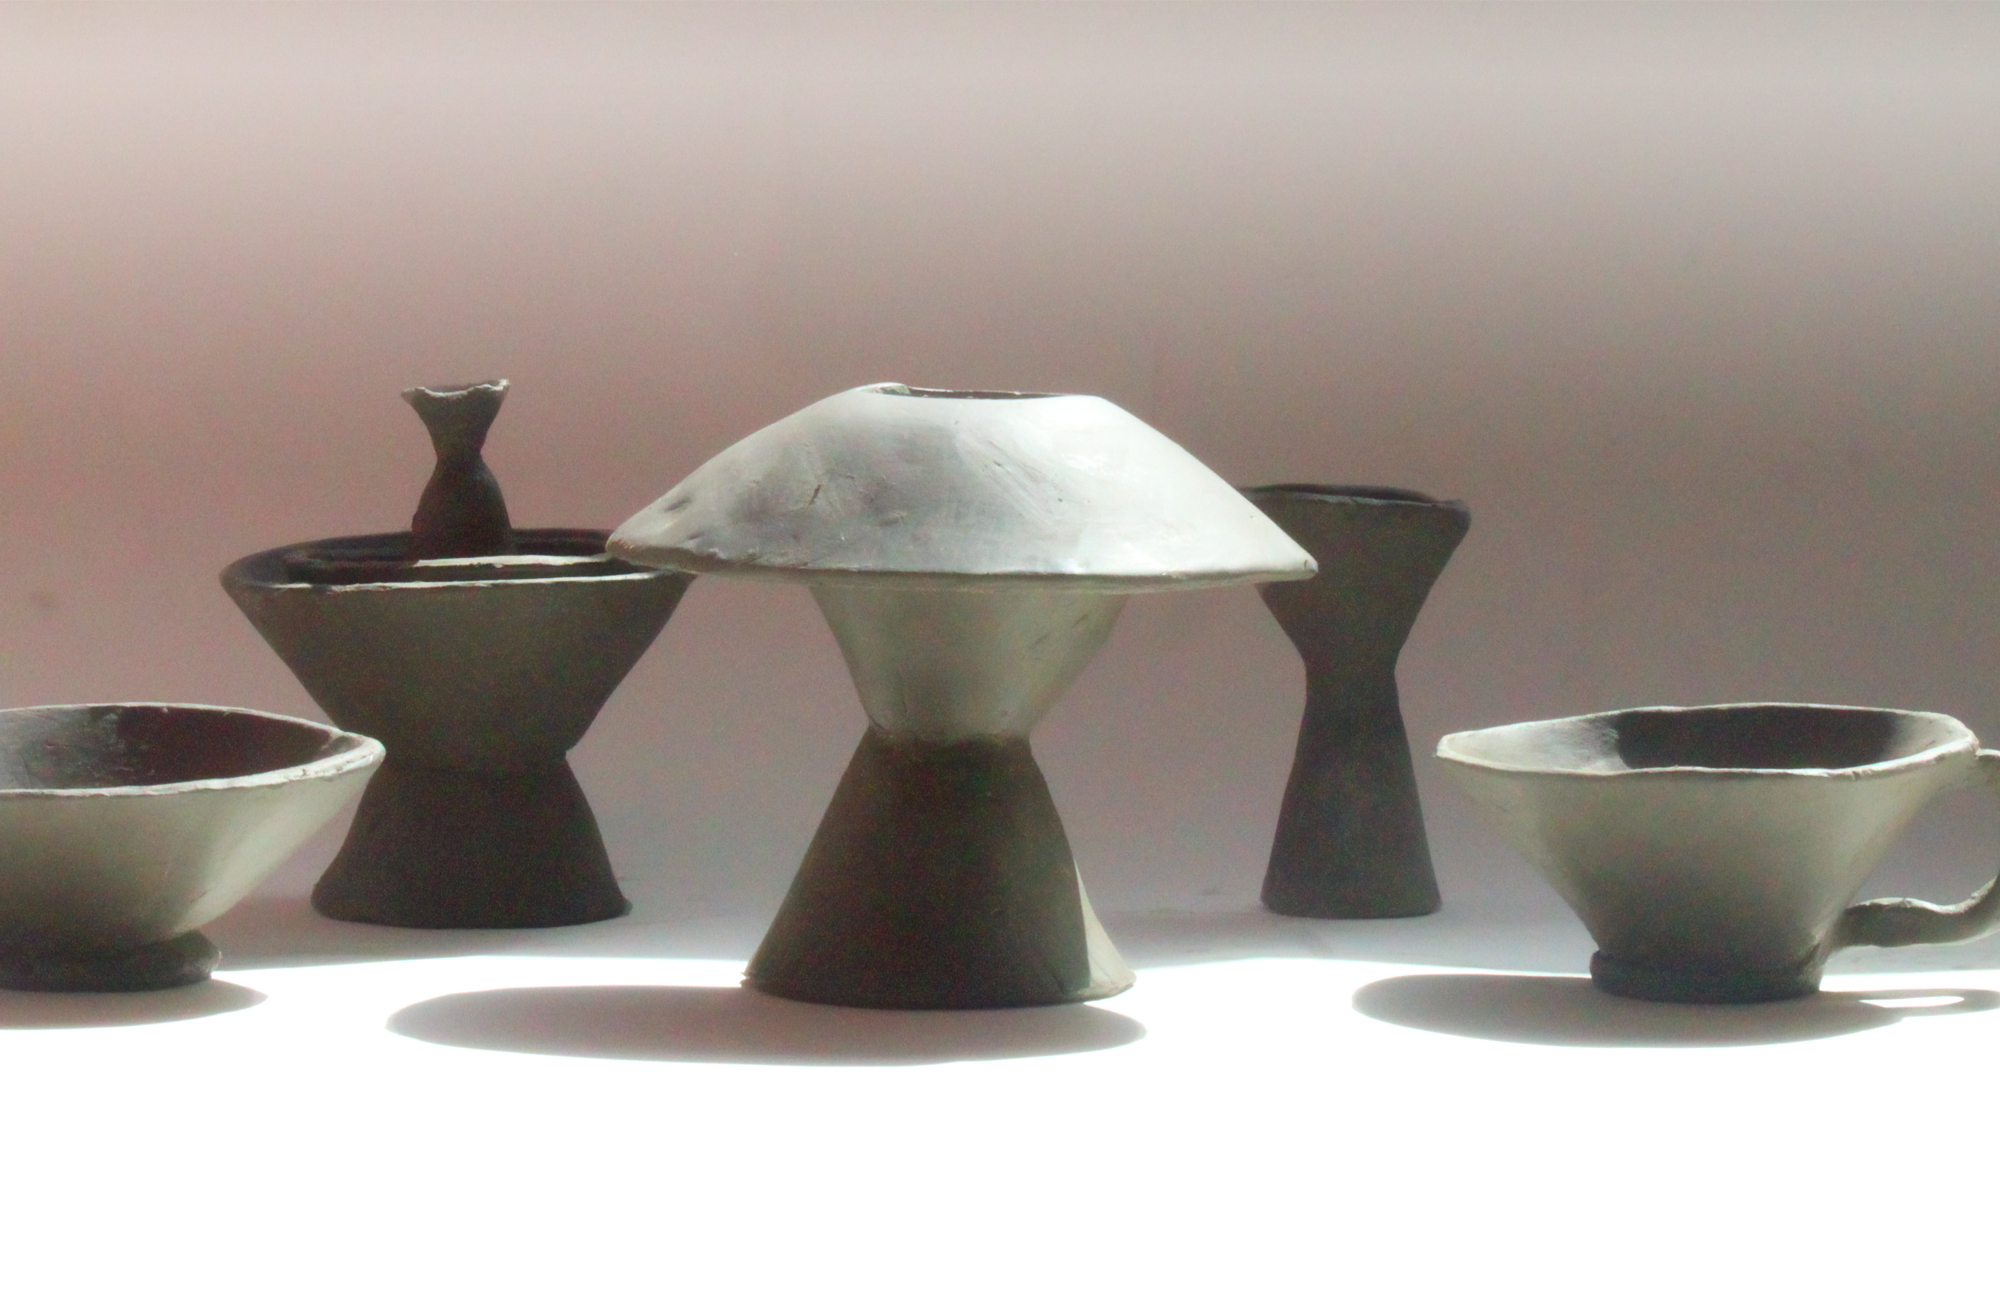 photograph of conical clay vases, jugs and vessels in different sizes or forms